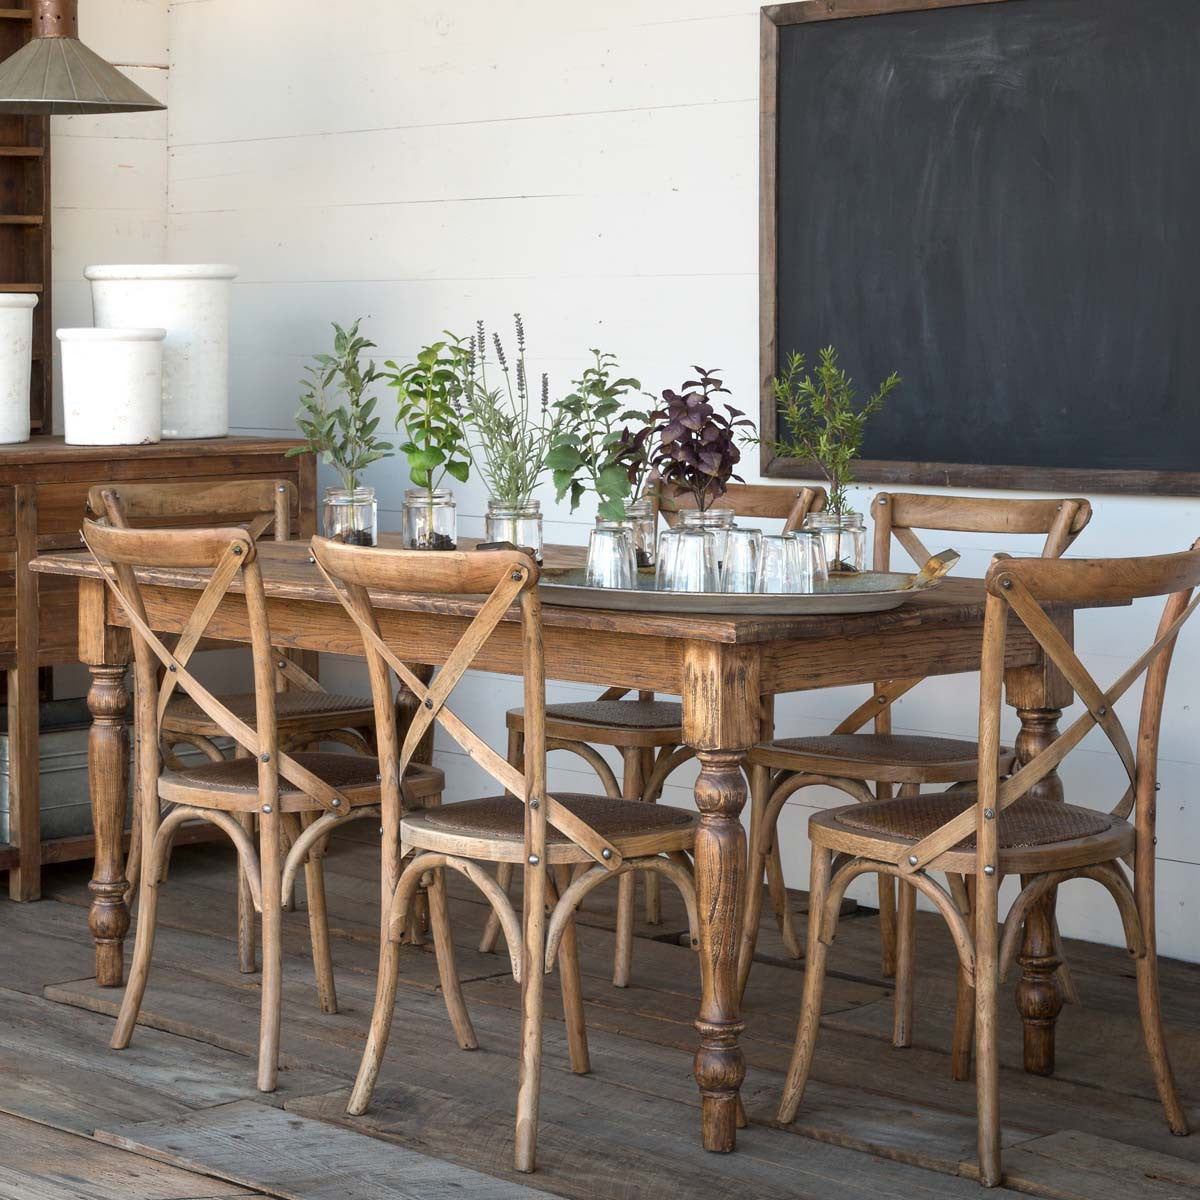 park hill collection farmhouse tables for sale, old elm farm table